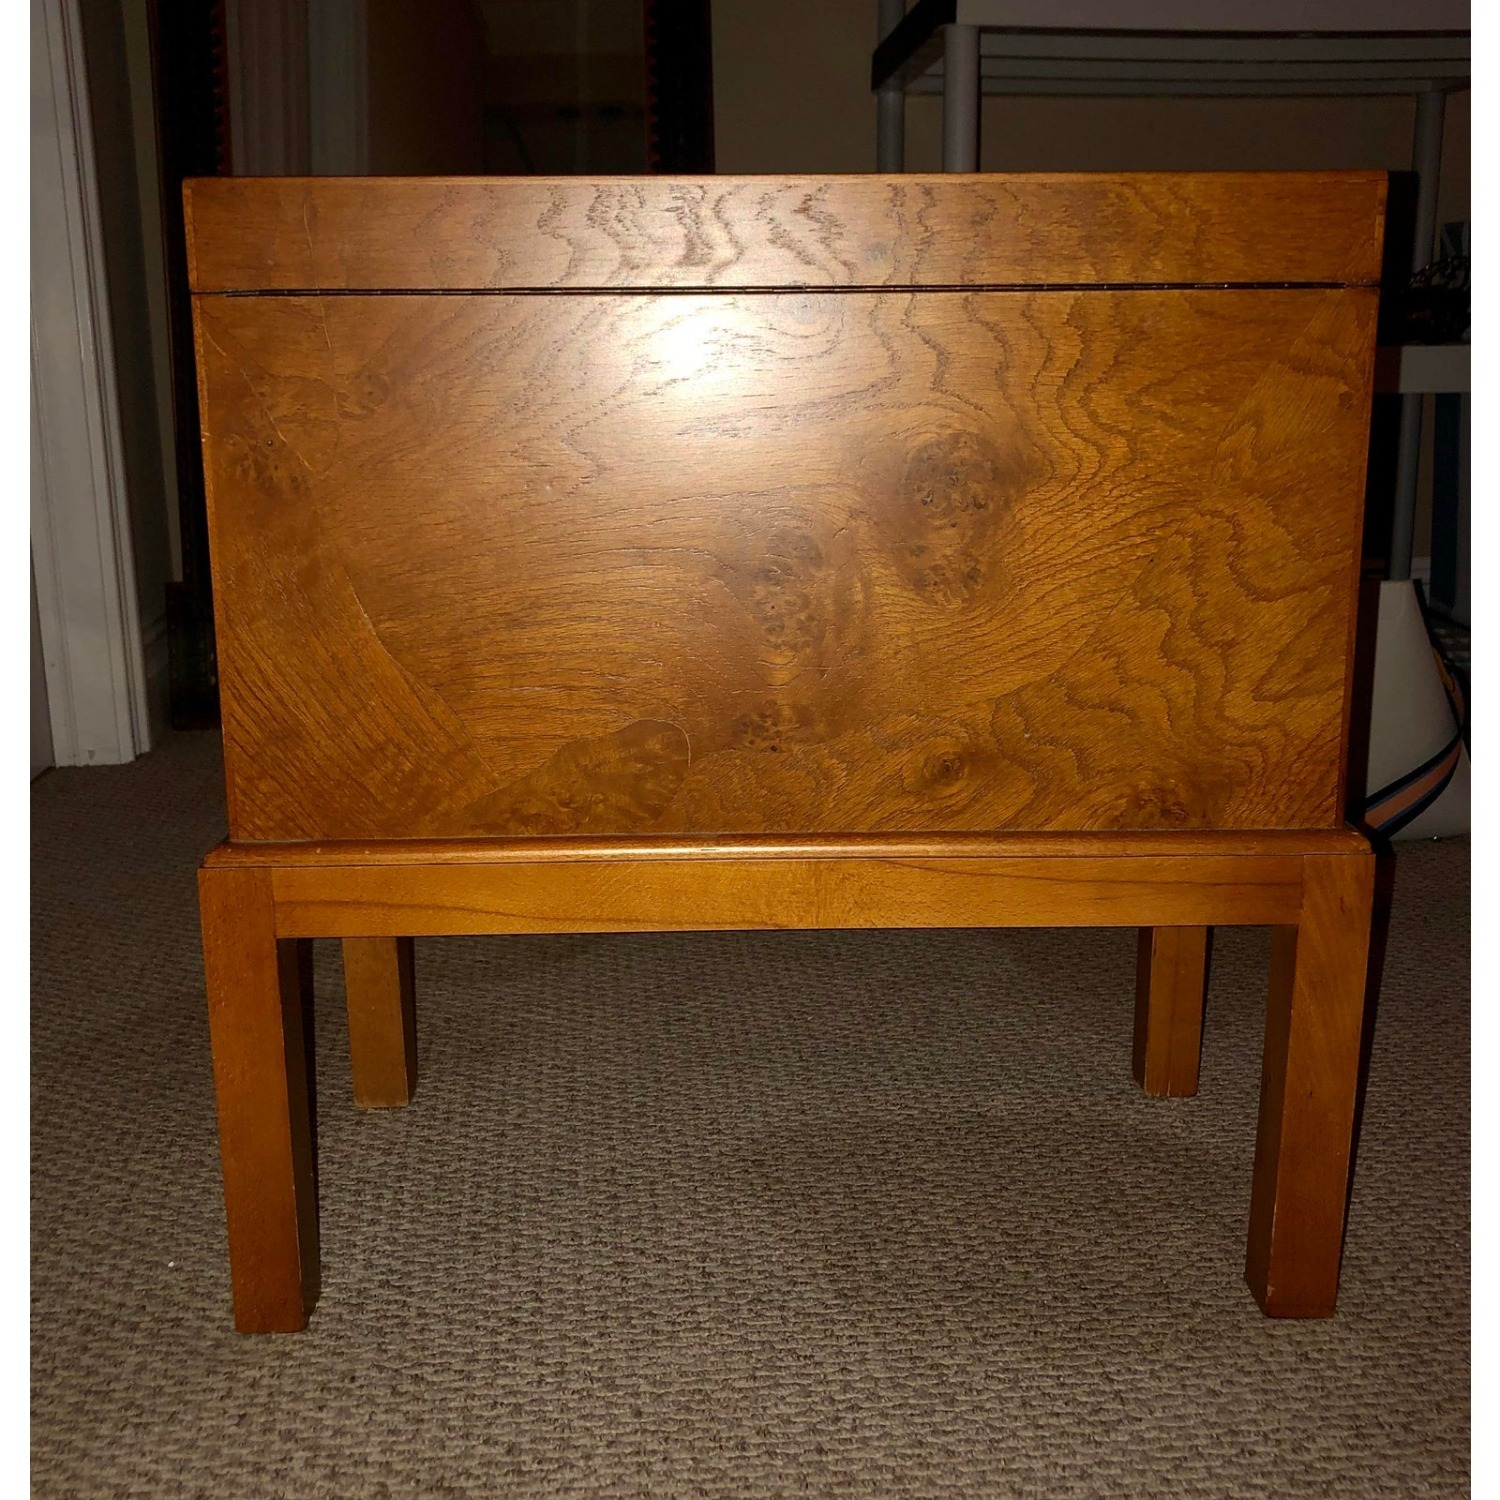 Vintage Wooden Keyhole Chest on Legs - image-5